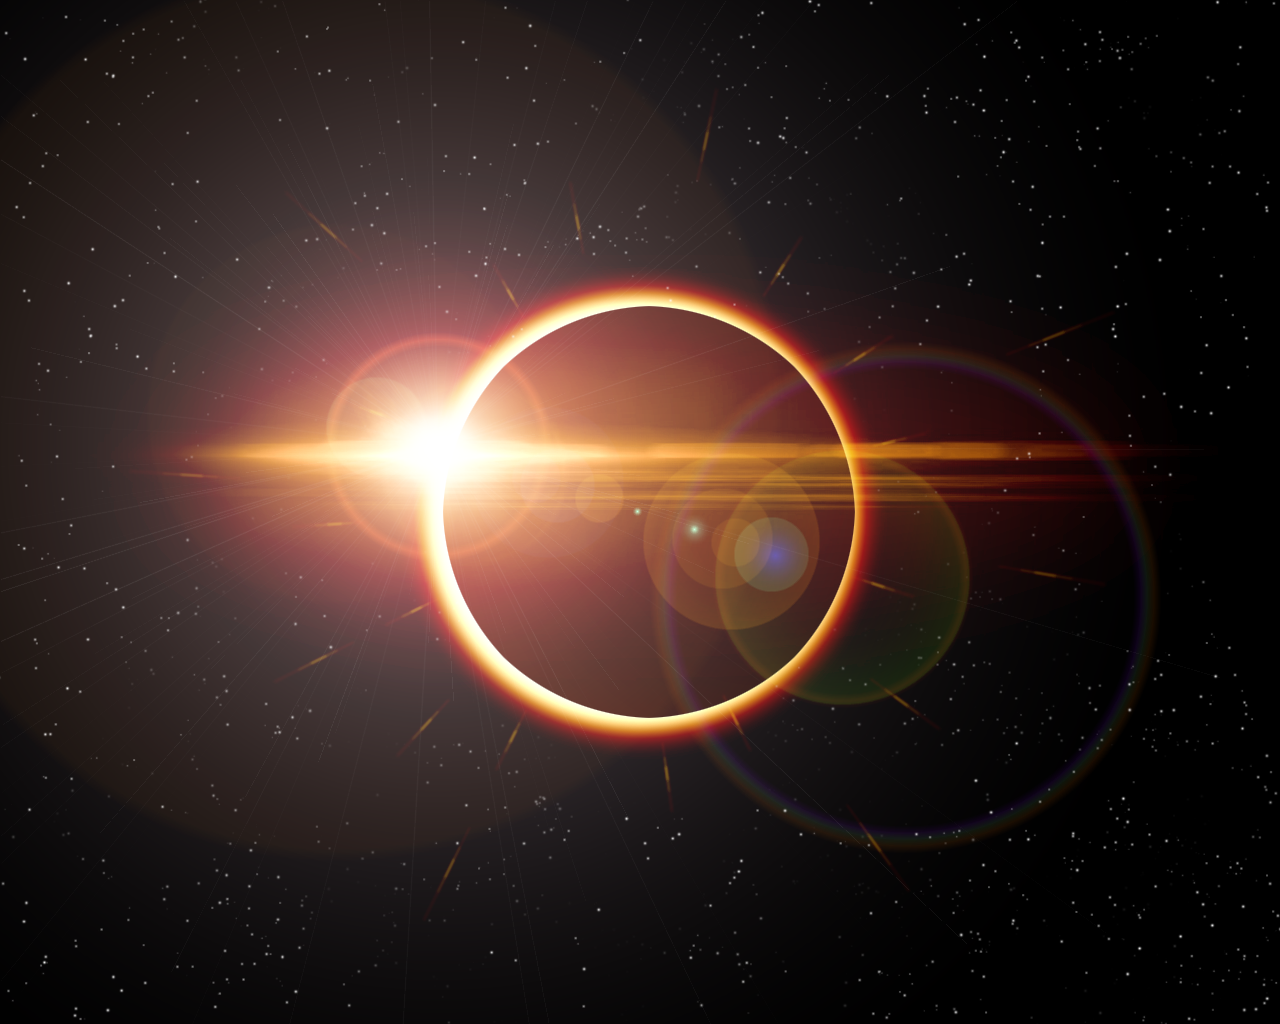 Solar Eclipse top of Earth, Sky Wallpaper, hd phone wallpapers ...